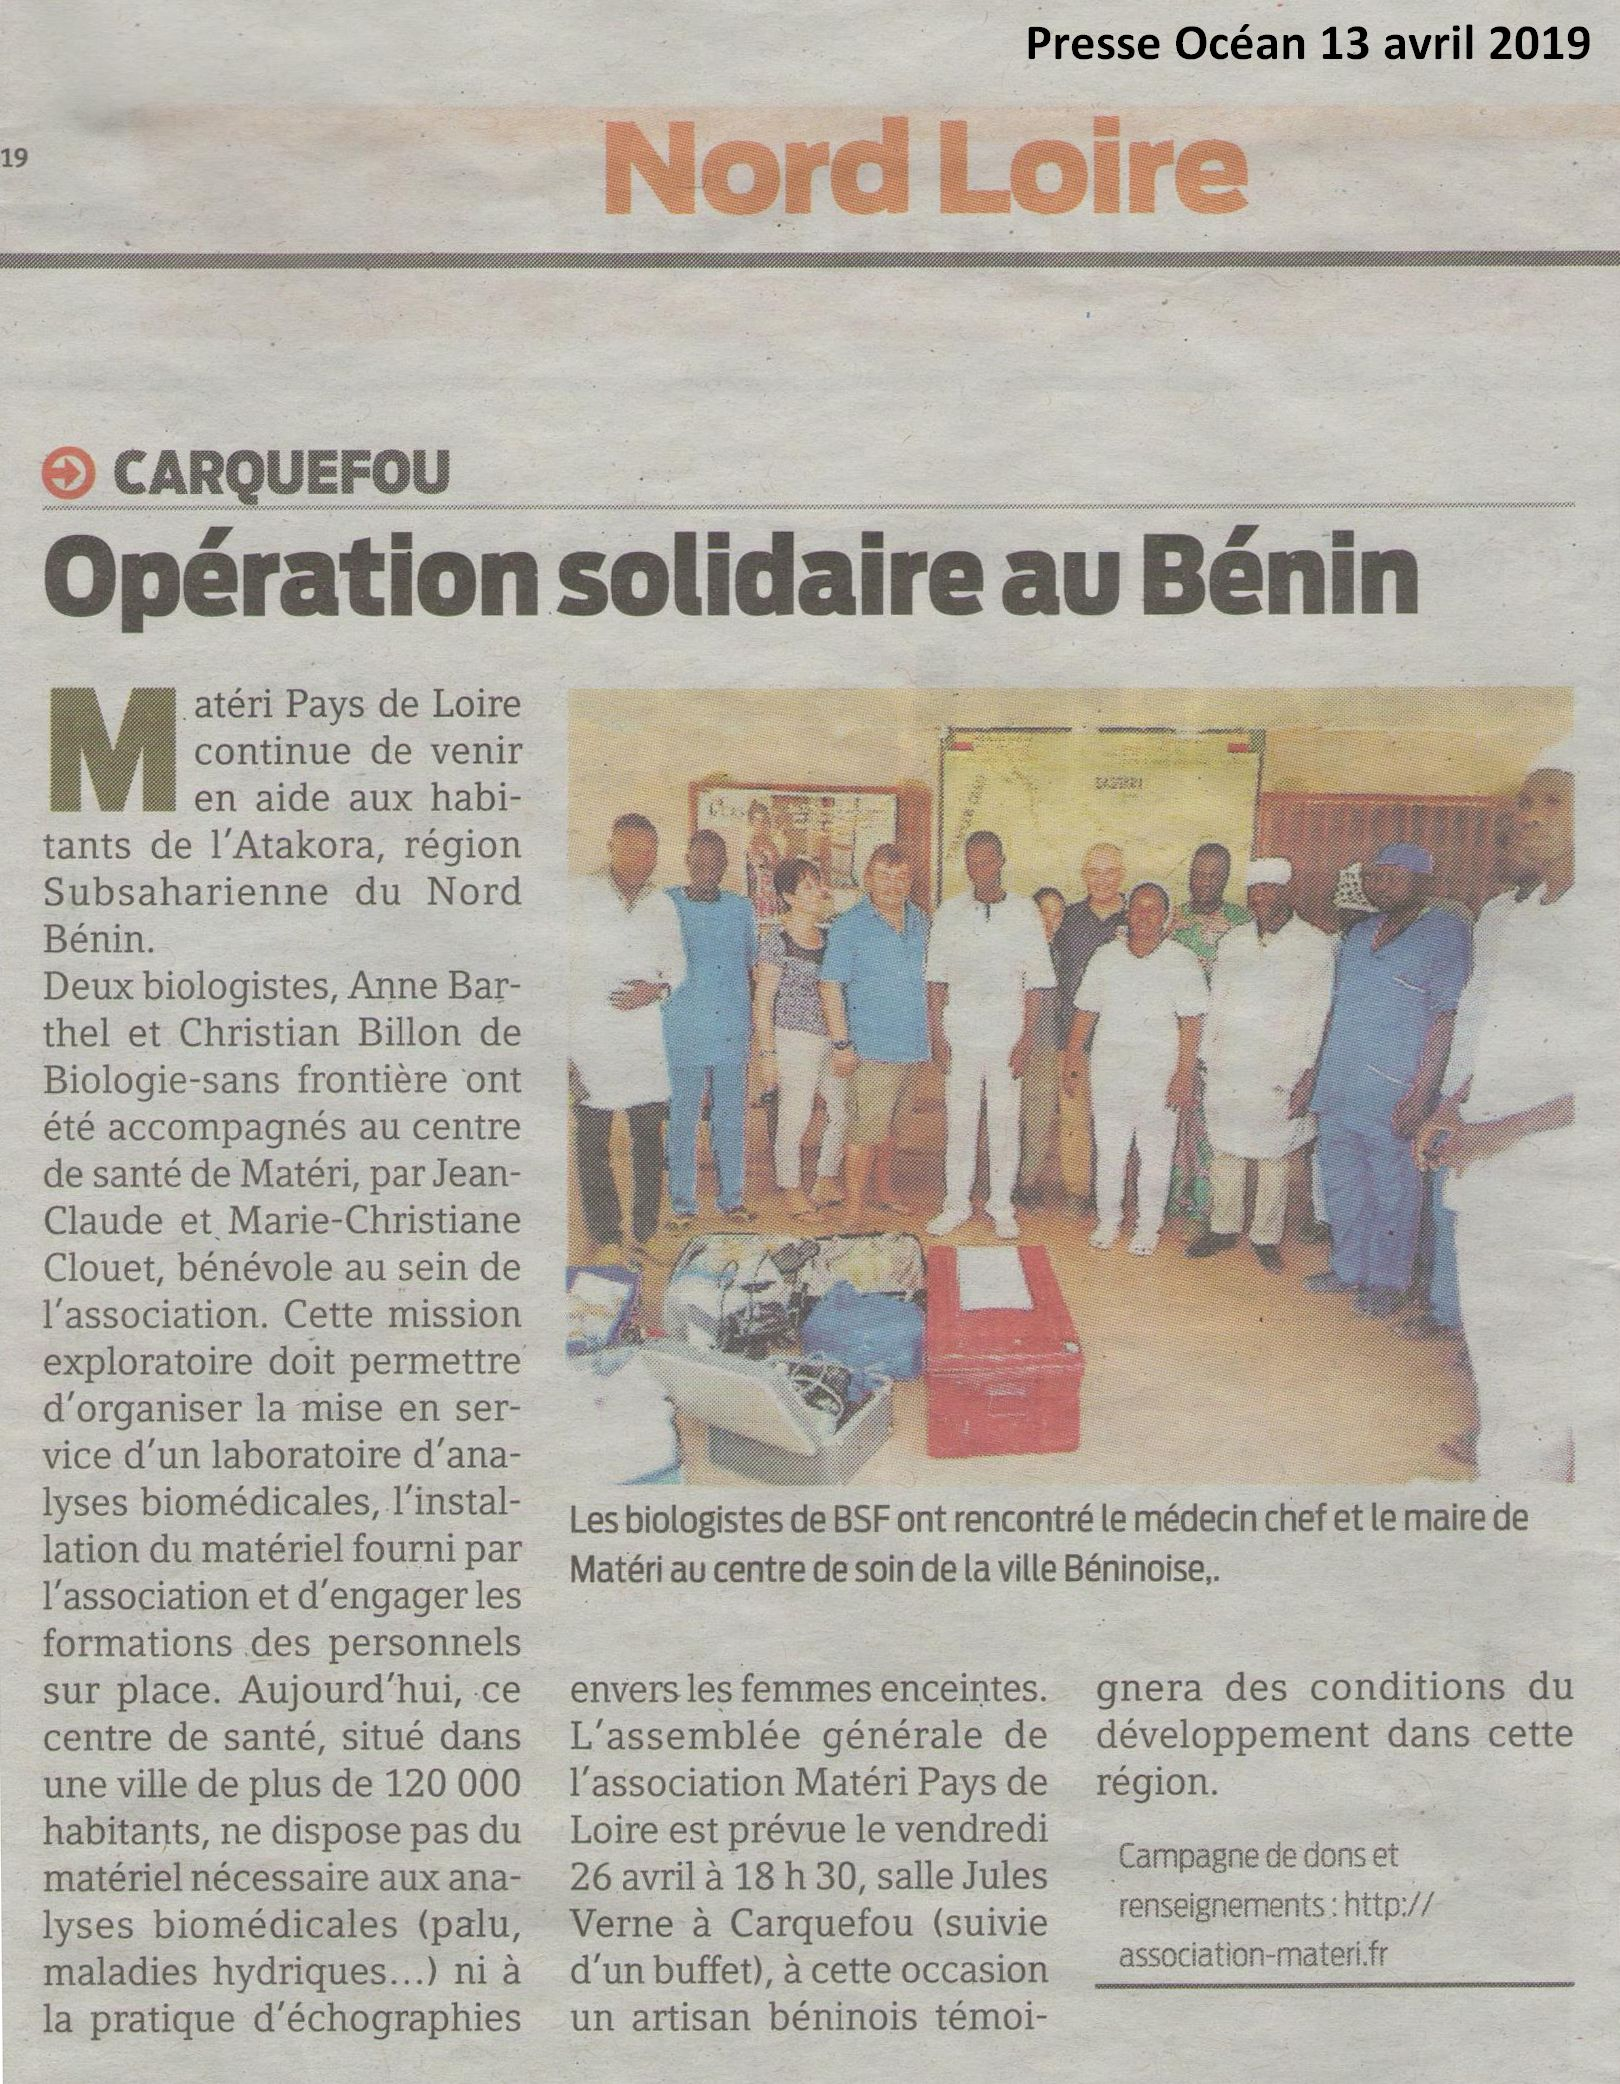 PO 13 avril 2019 Operation Solidaire